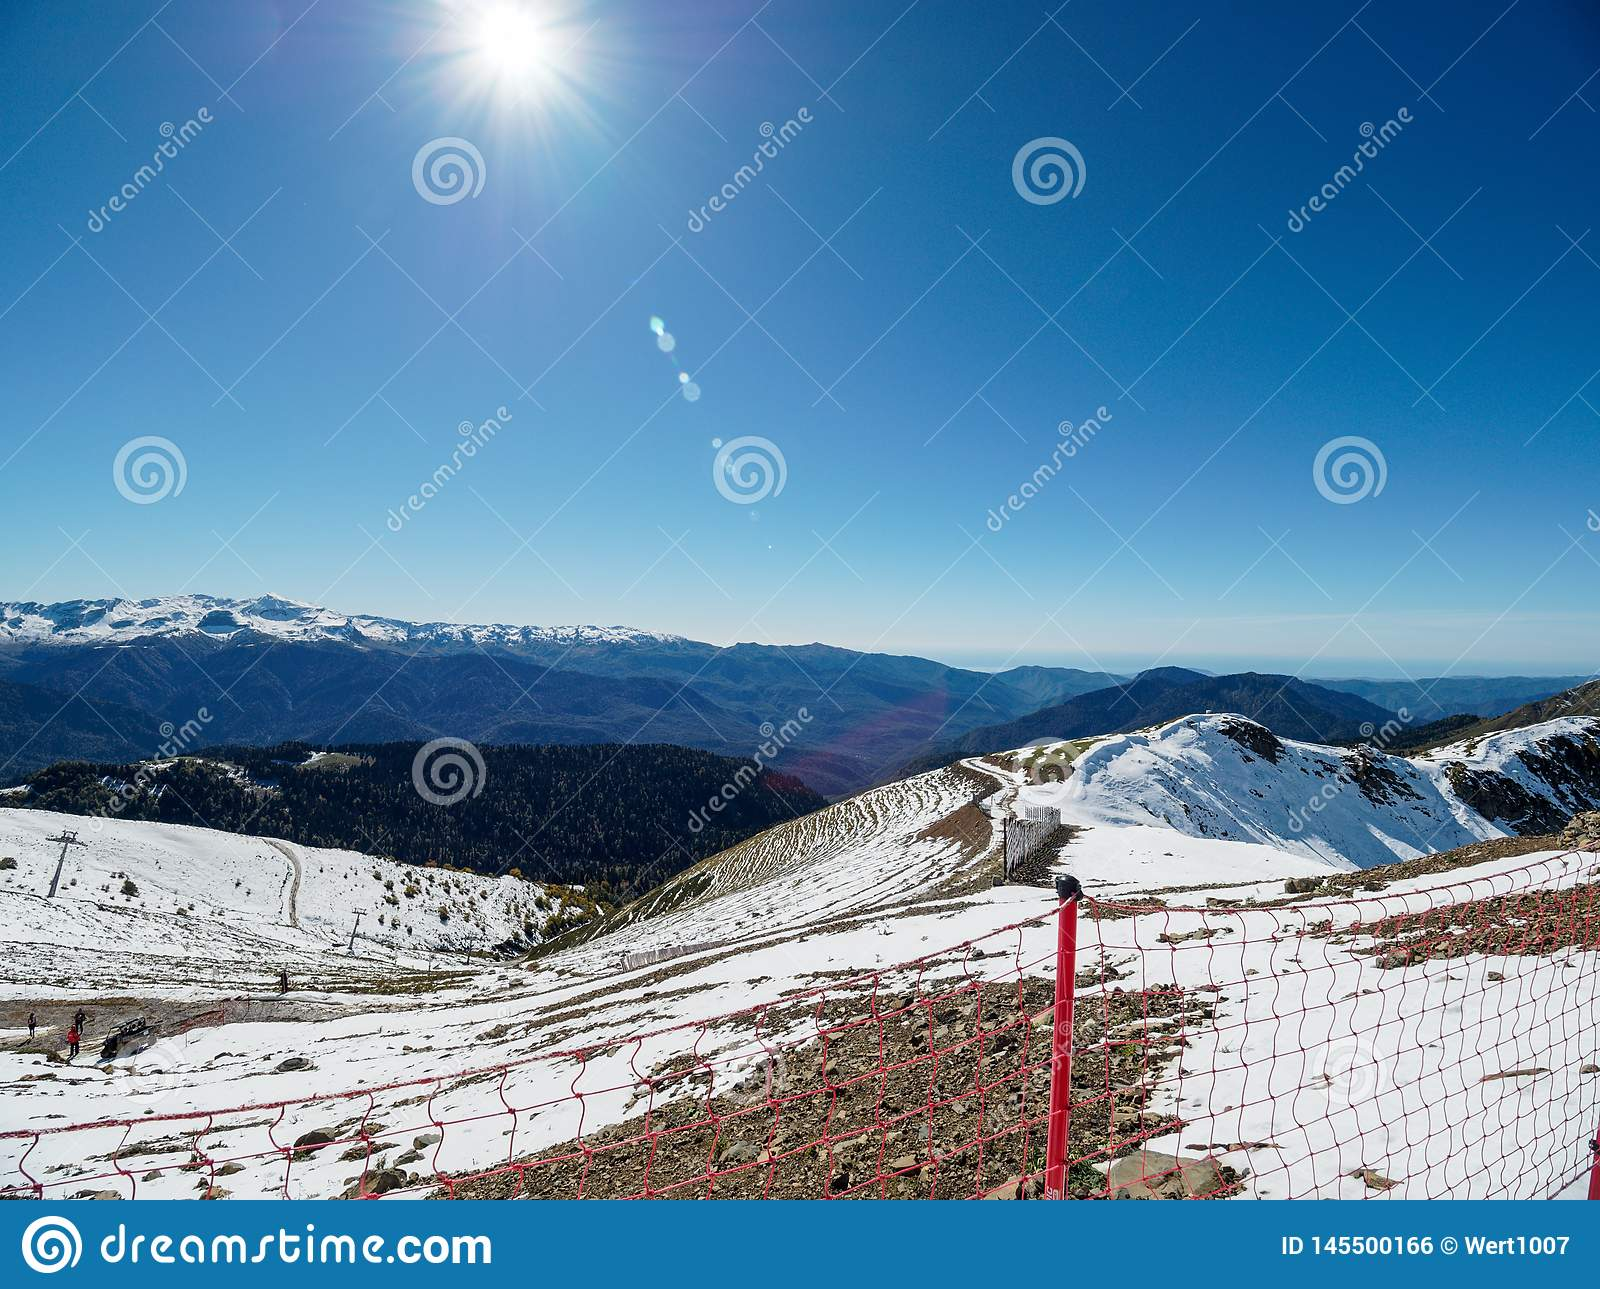 Snowy slope high mountains with ski lift. Blue sunny skies